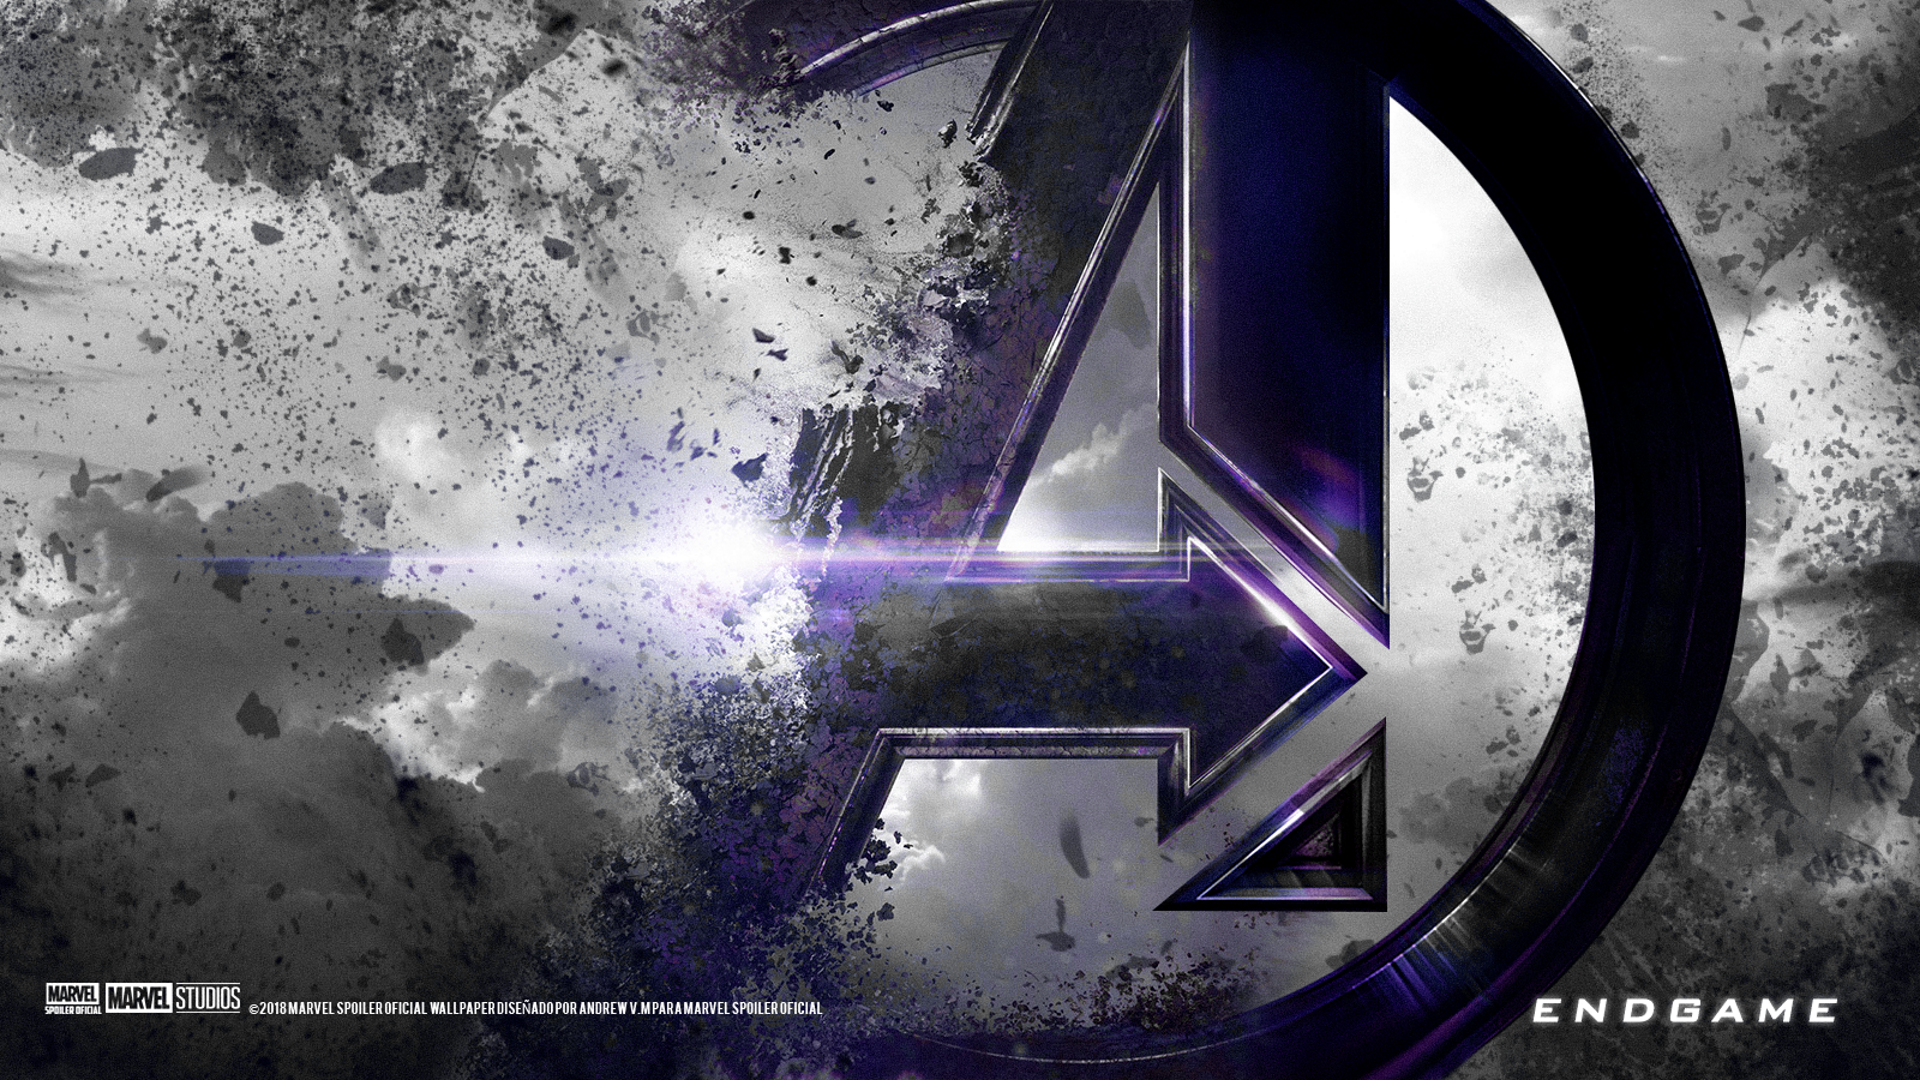 Avengers Endgame [1920x1080] (Custom Colour Accent Black